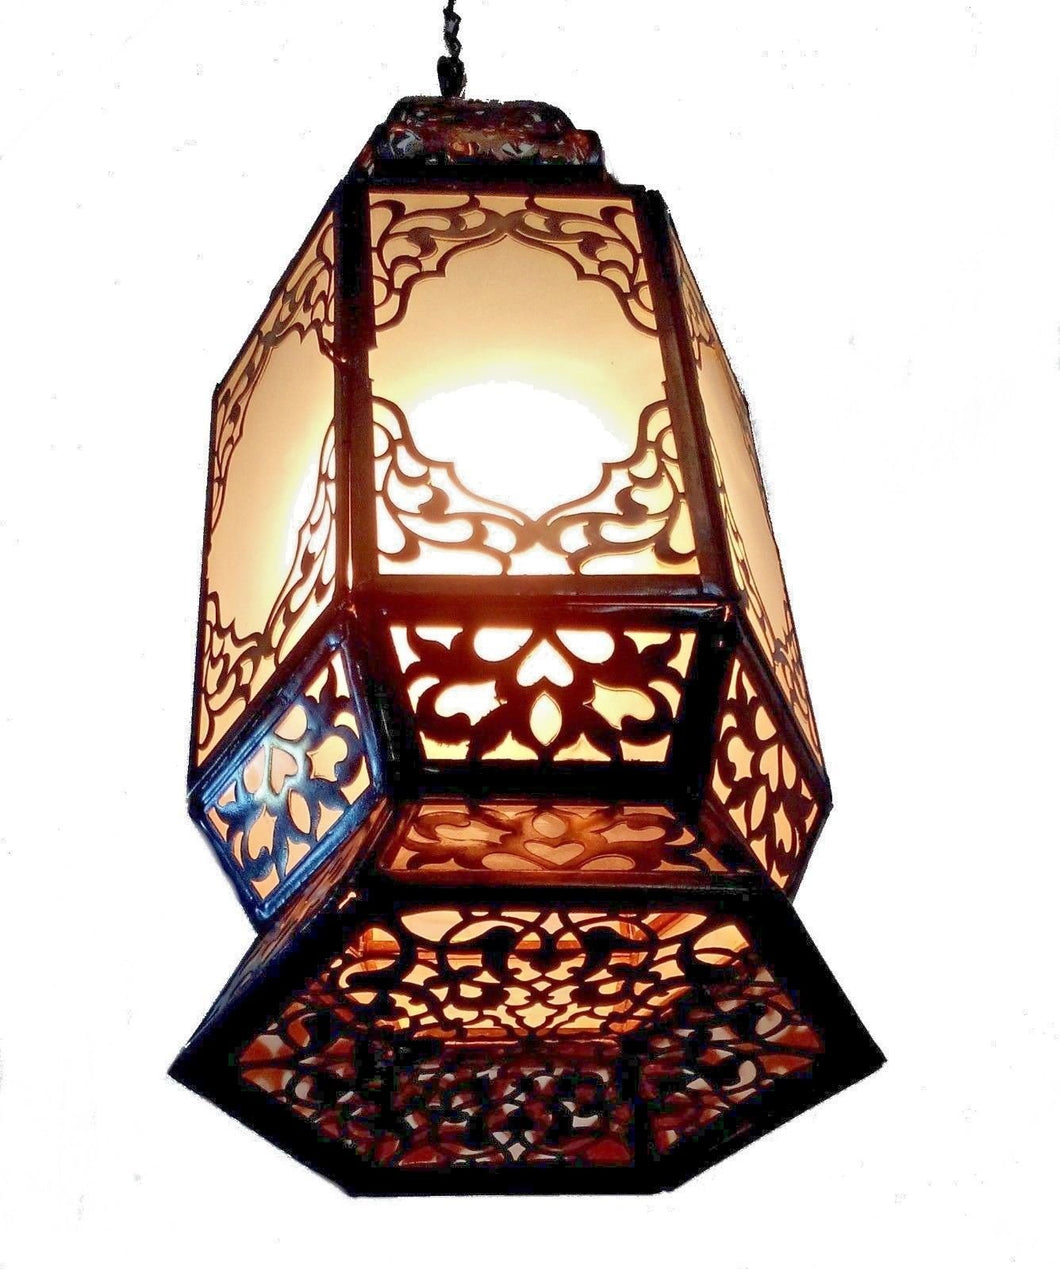 B221 Large Hexagonal Moroccan Lamp with White Frosted Glass